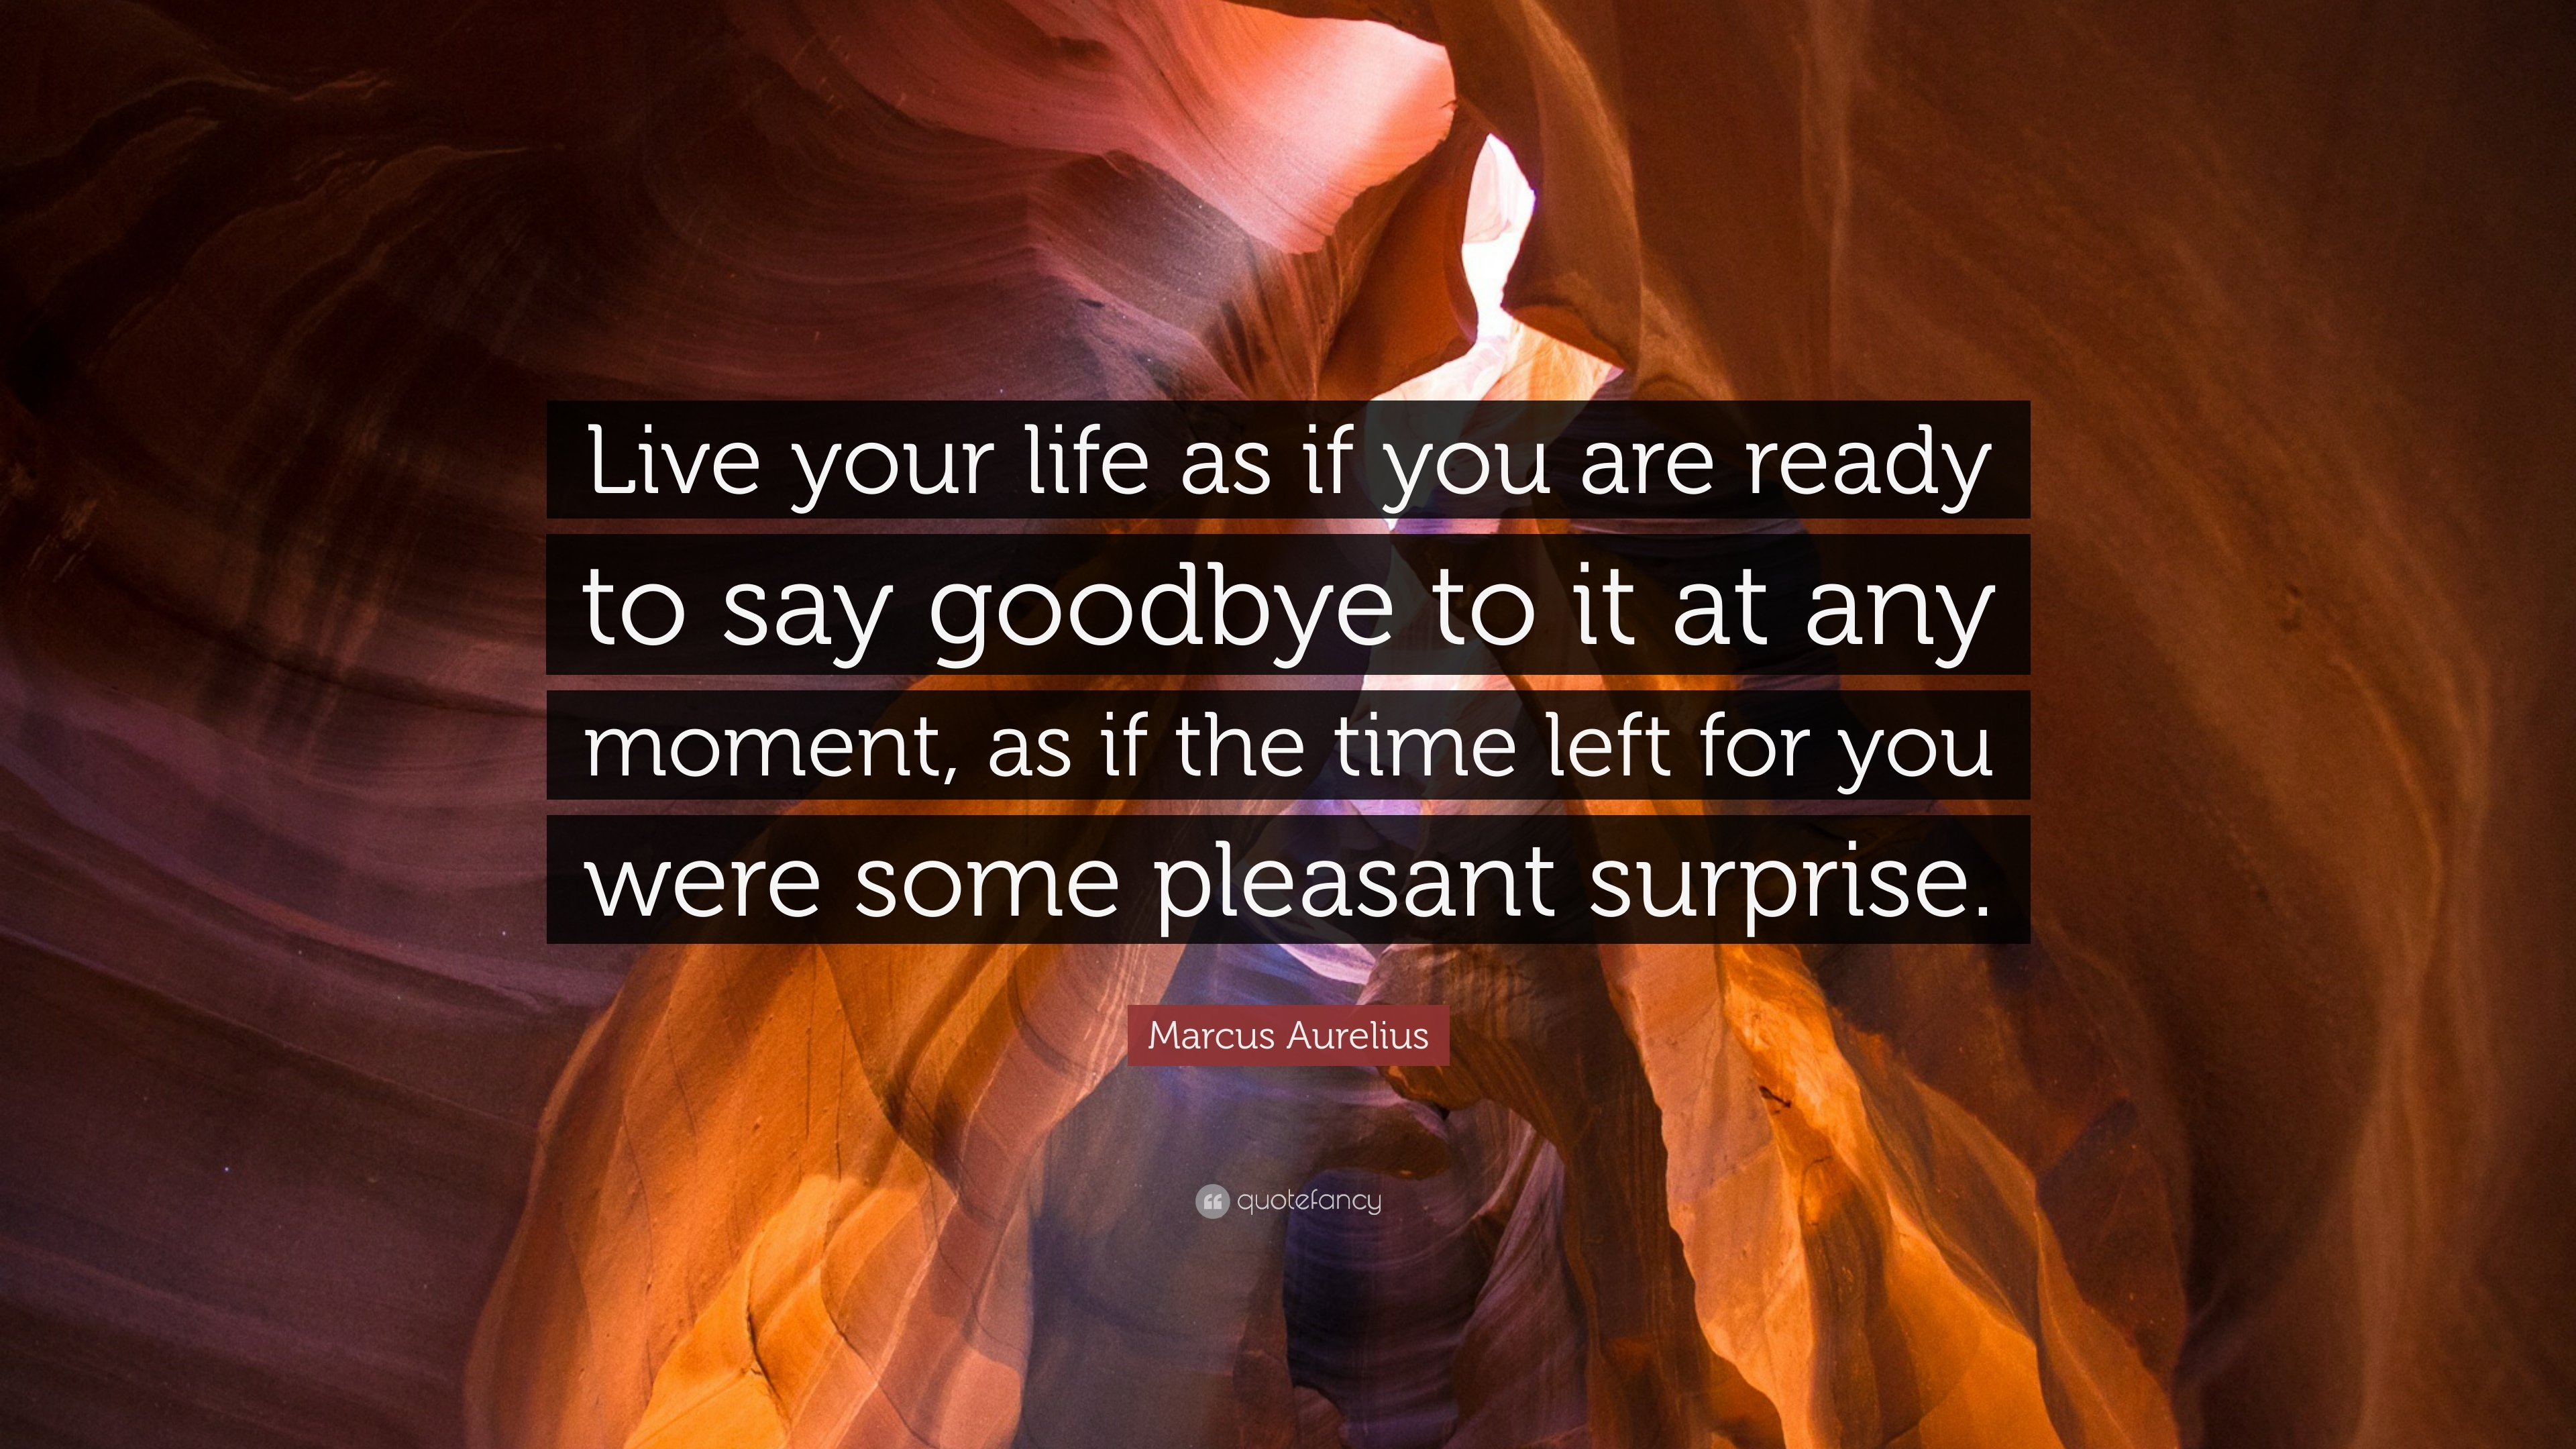 Marcus Aurelius Quote: U201cLive Your Life As If You Are Ready To Say Goodbye